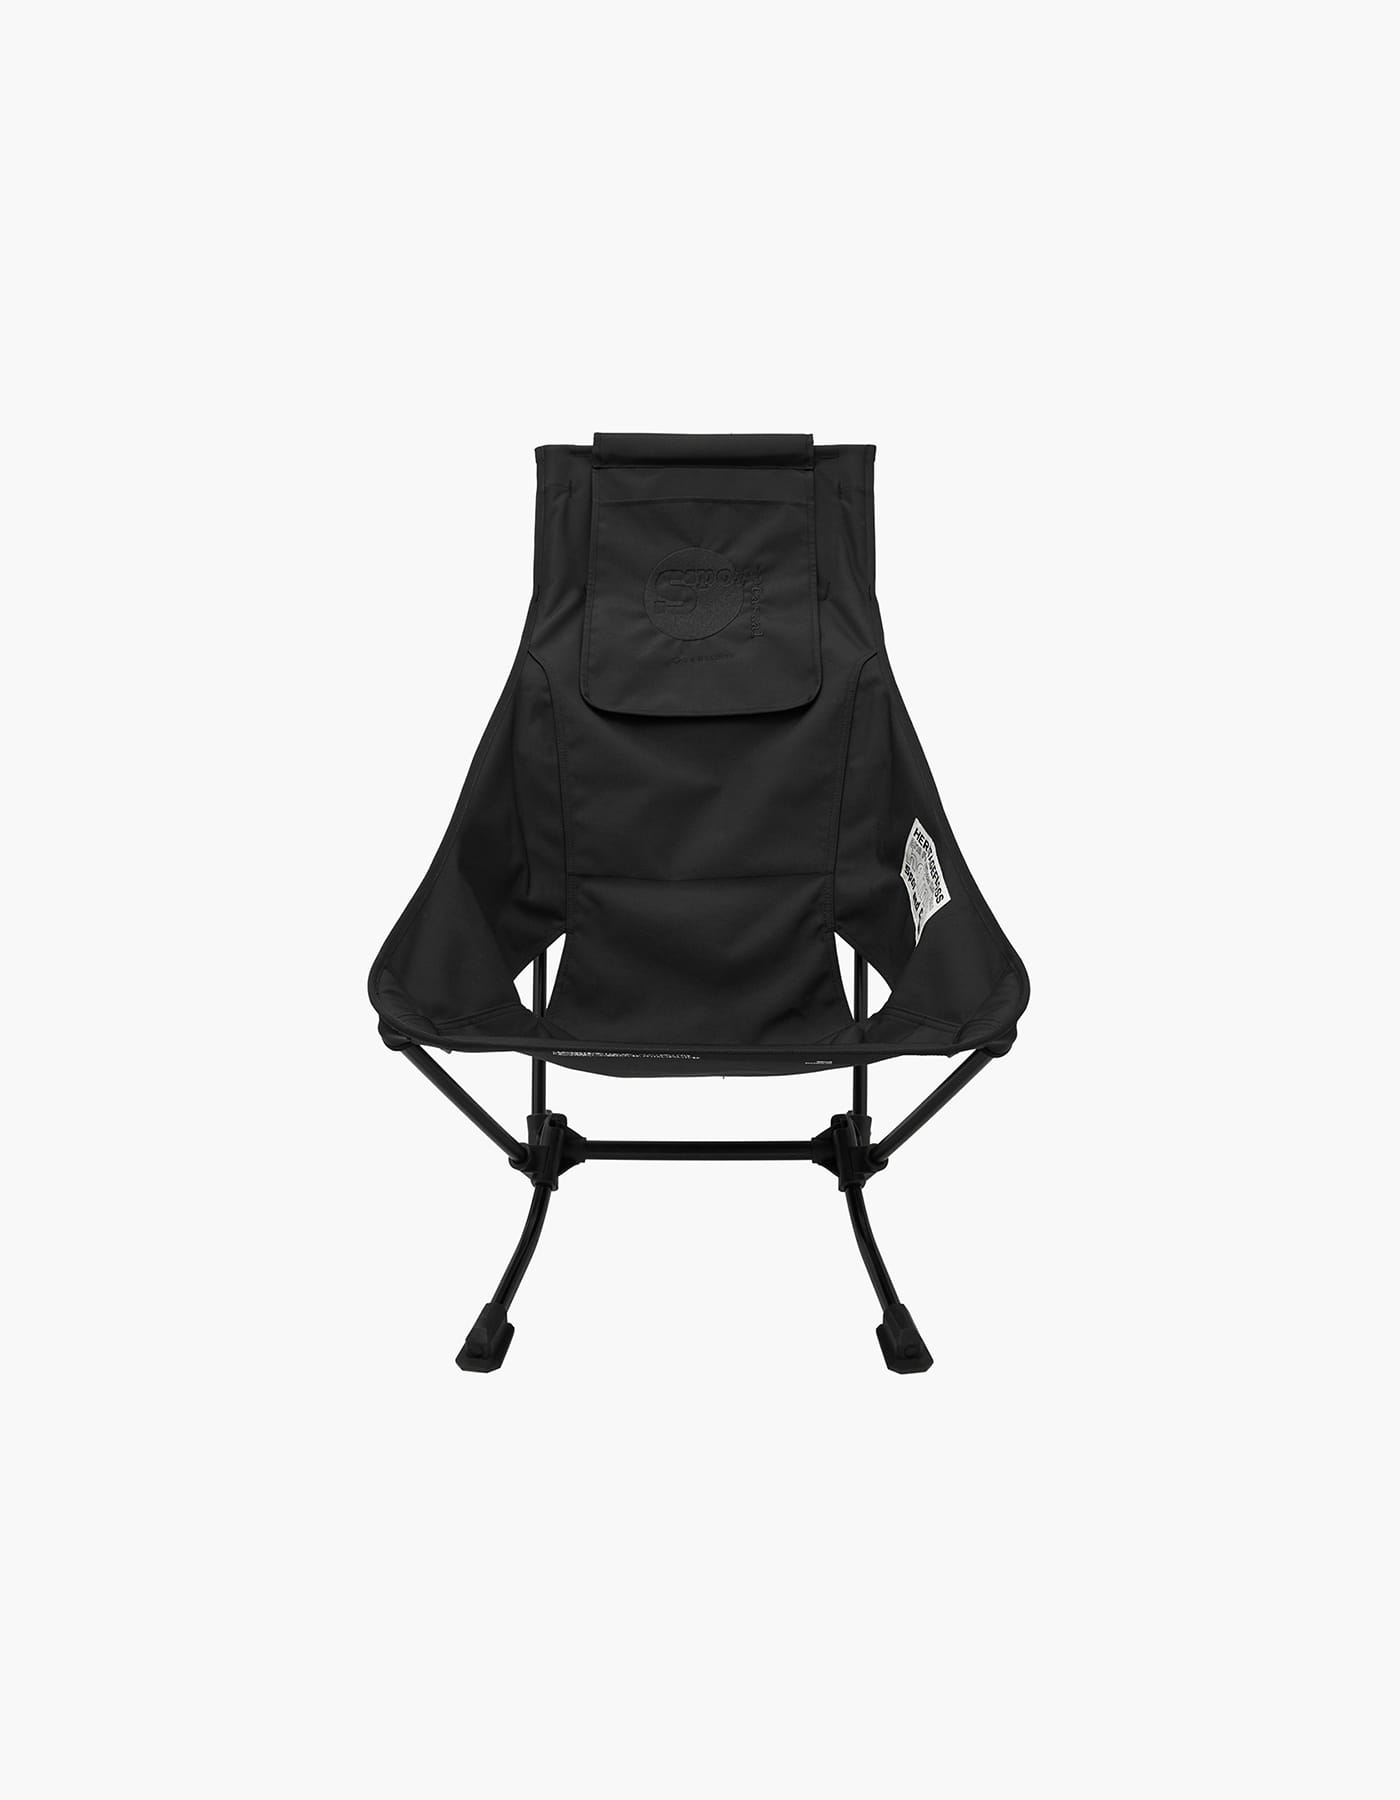 HELINOX X HERITAGEFLOSS BEACH CHAIR / BLACK